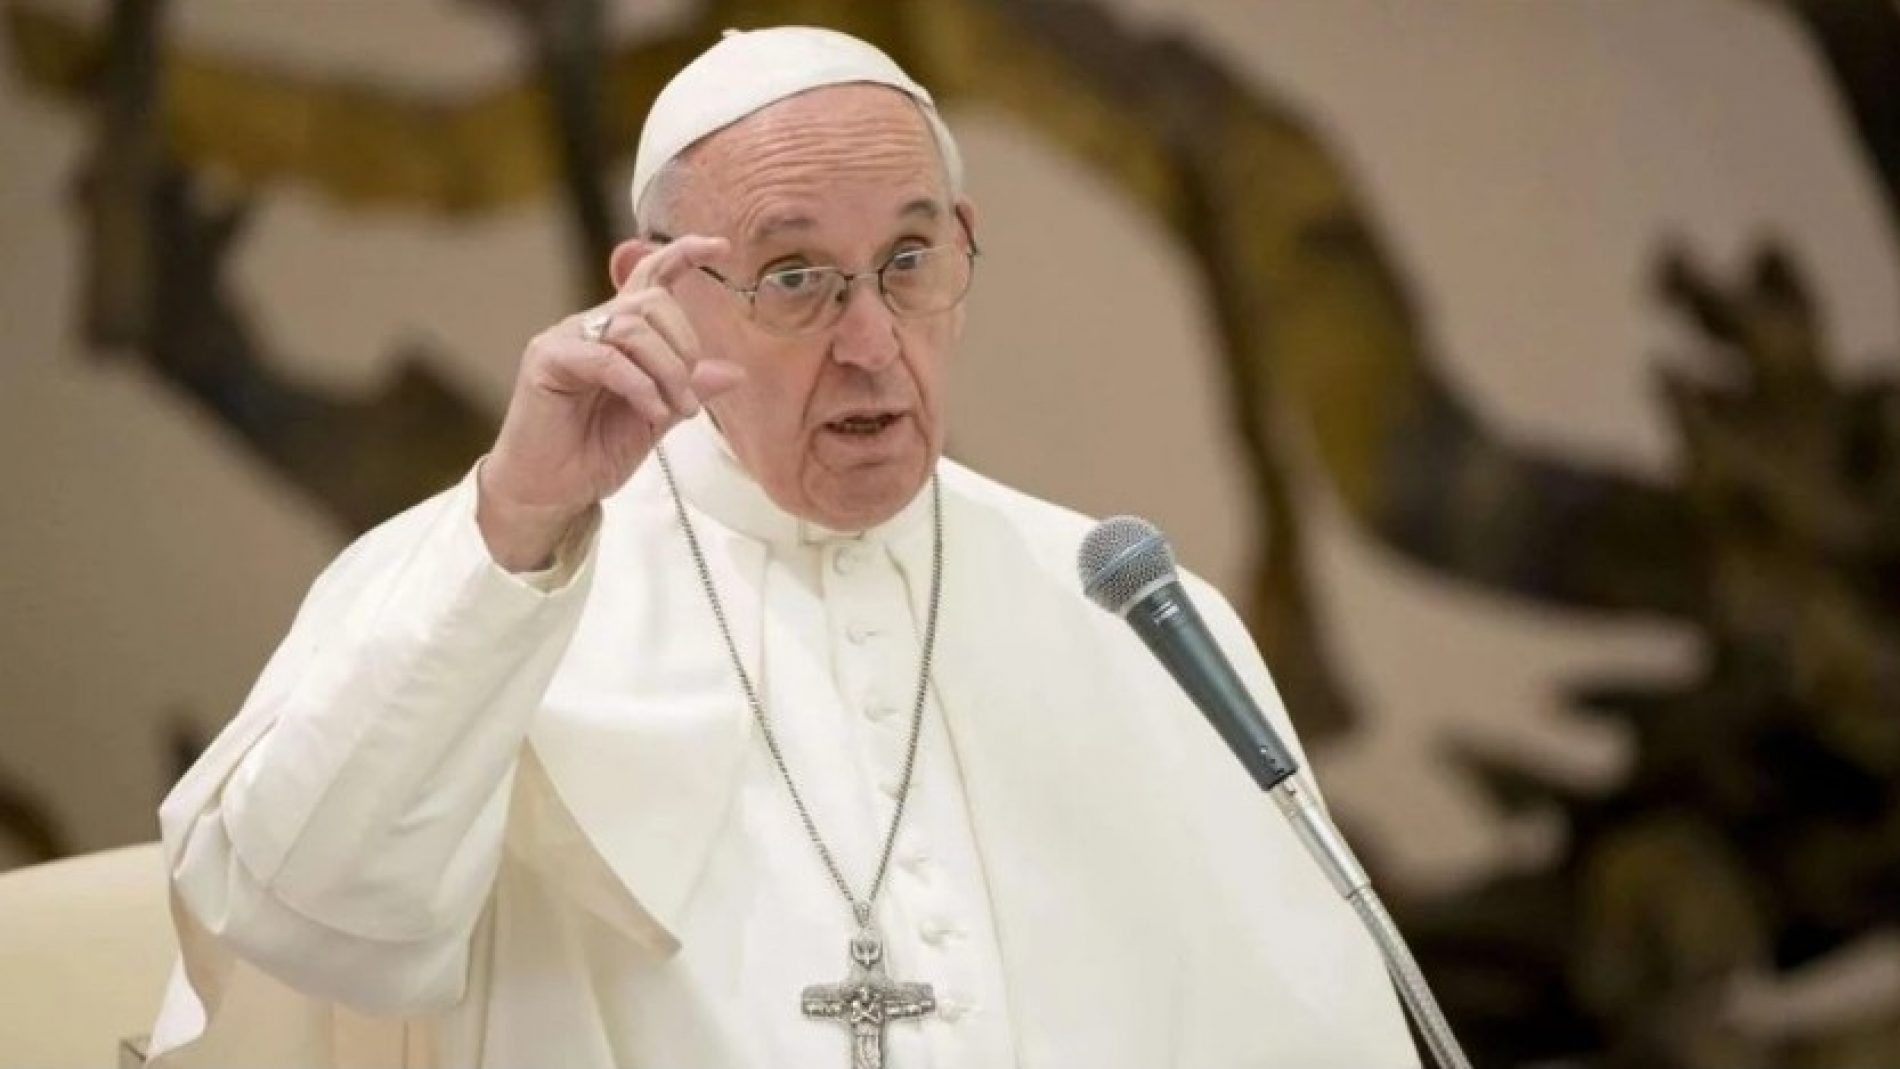 The Vatican erases Pope Francis's comments suggesting Gay Children need 'Psychiatric' Help following backlash